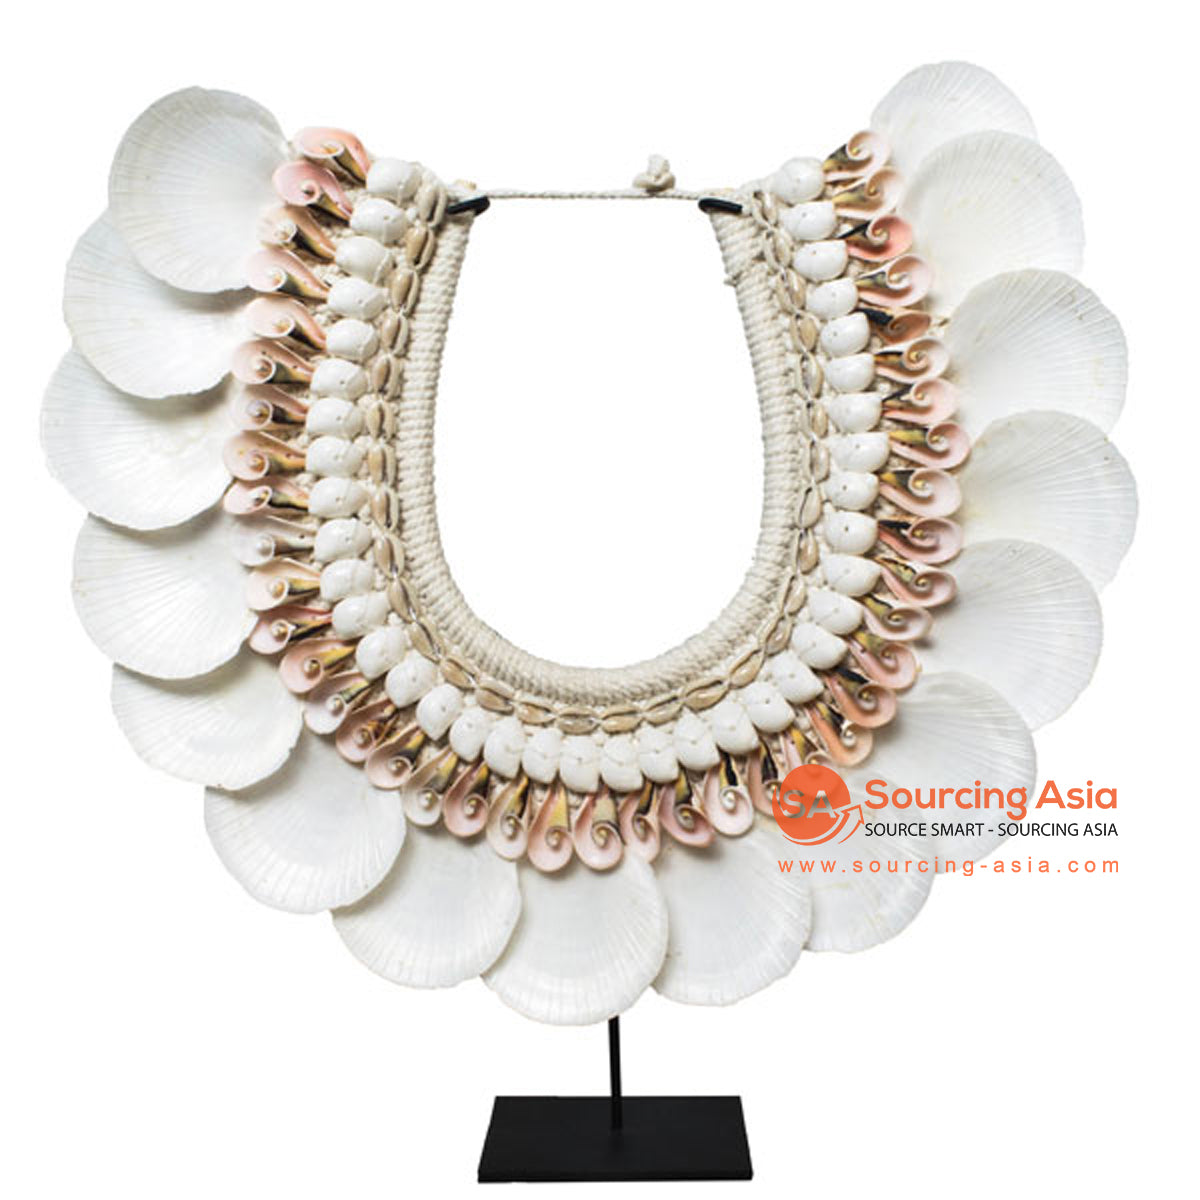 SHL169-2 SHELL NECKLACE DECORATION WITH BLACK STAND: